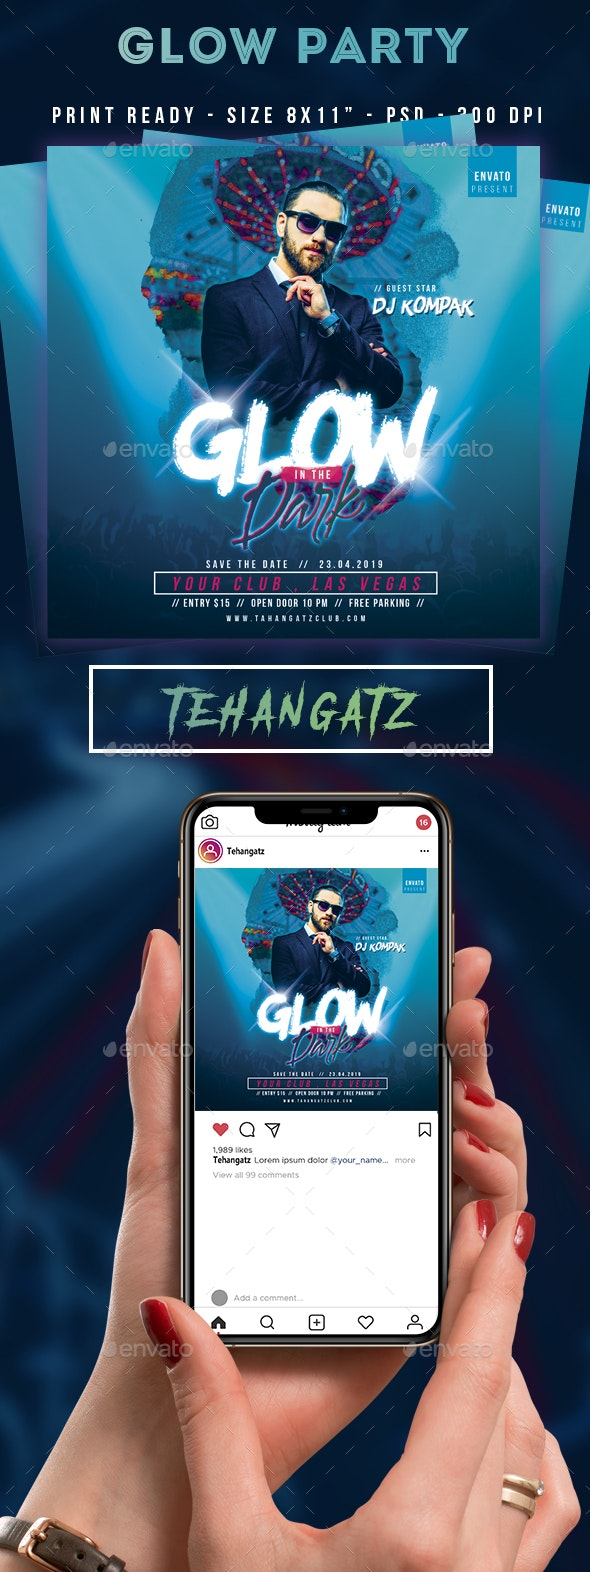 Glow Event Party Flyer - Clubs & Parties Events